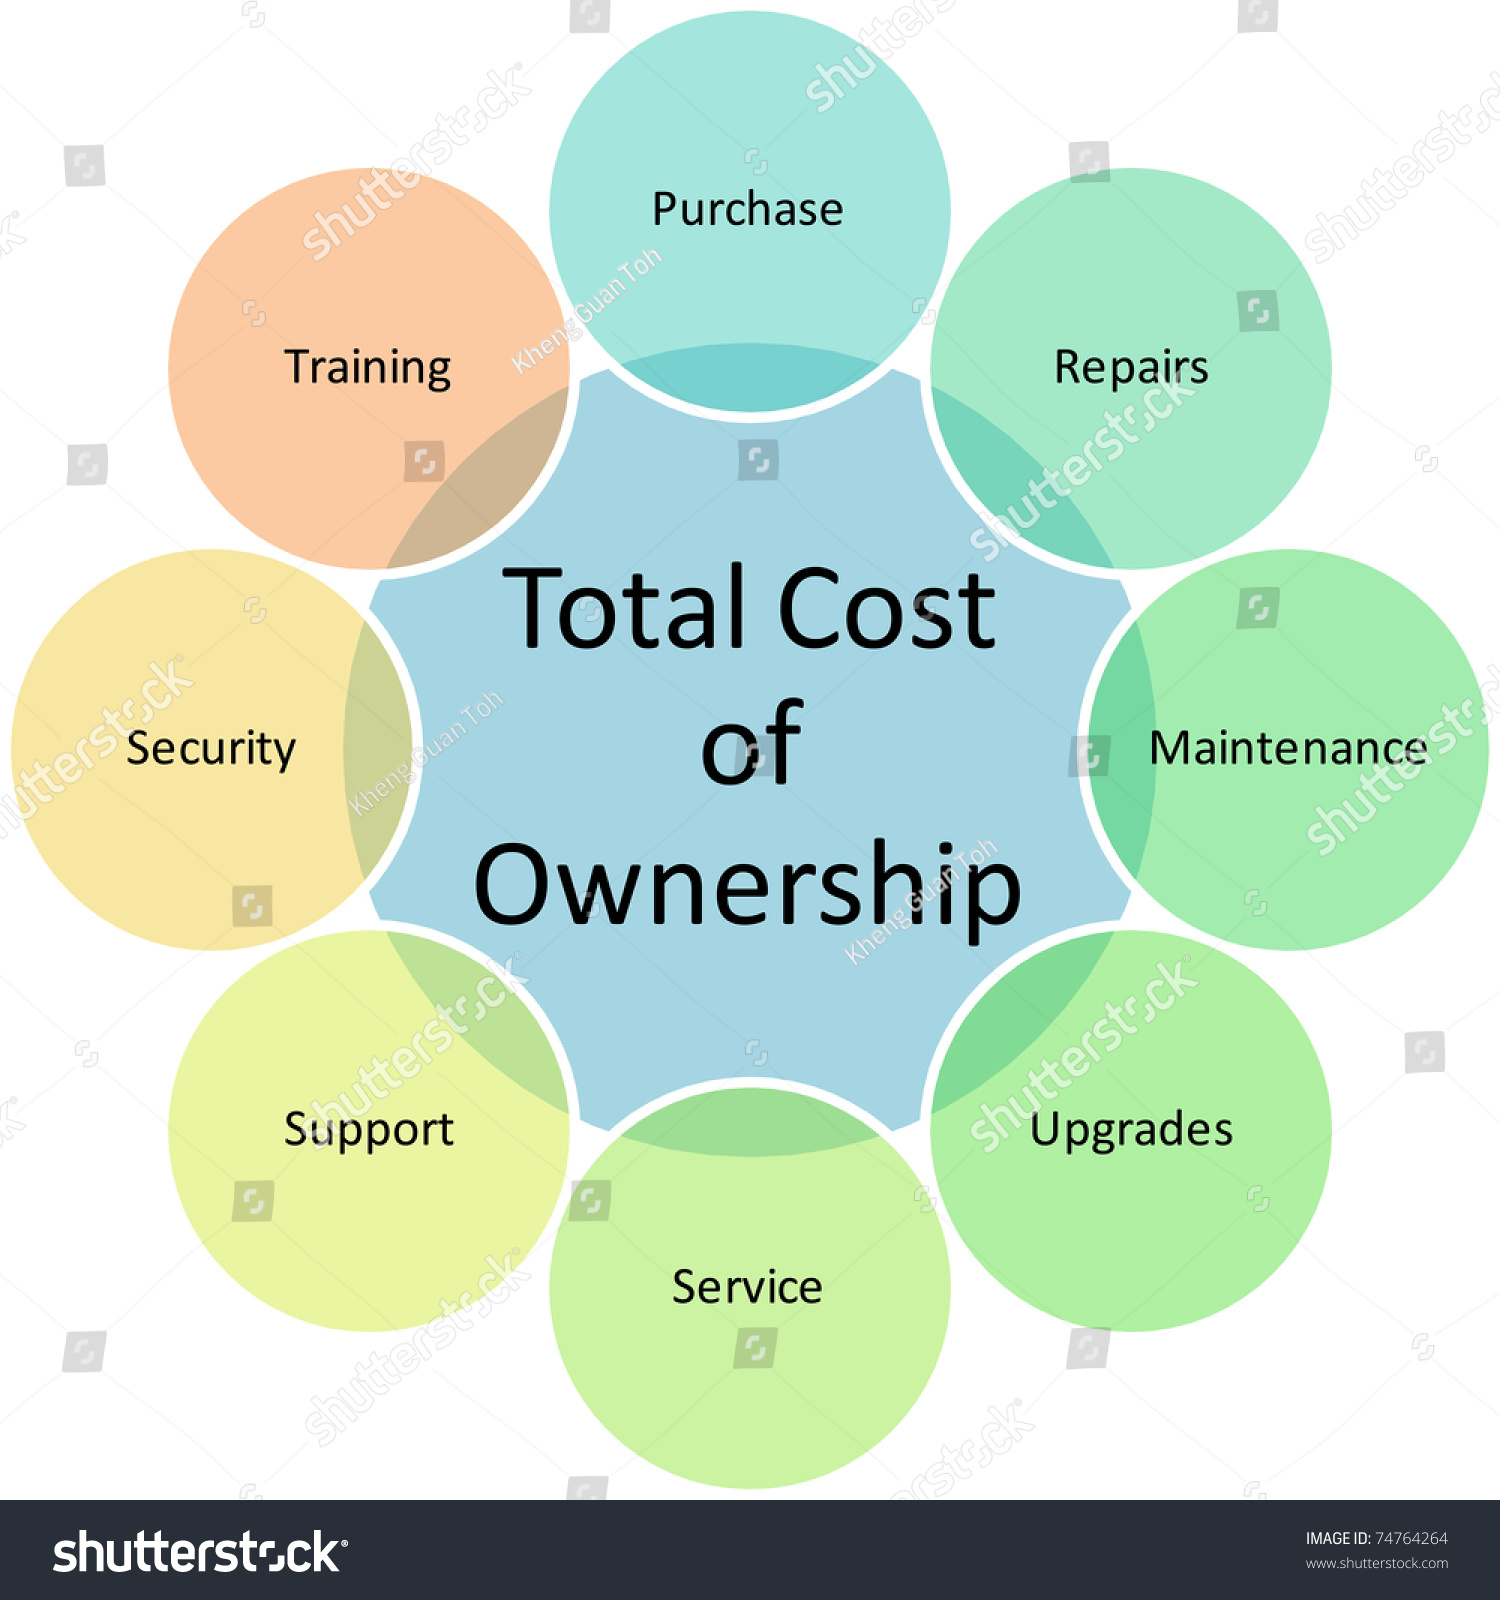 an analysis of the ownership for the business a partnership Freddie mac single-family seller/servicer multiply by total percentage of ownership (on schedule combined subtotal from partnership (business name.